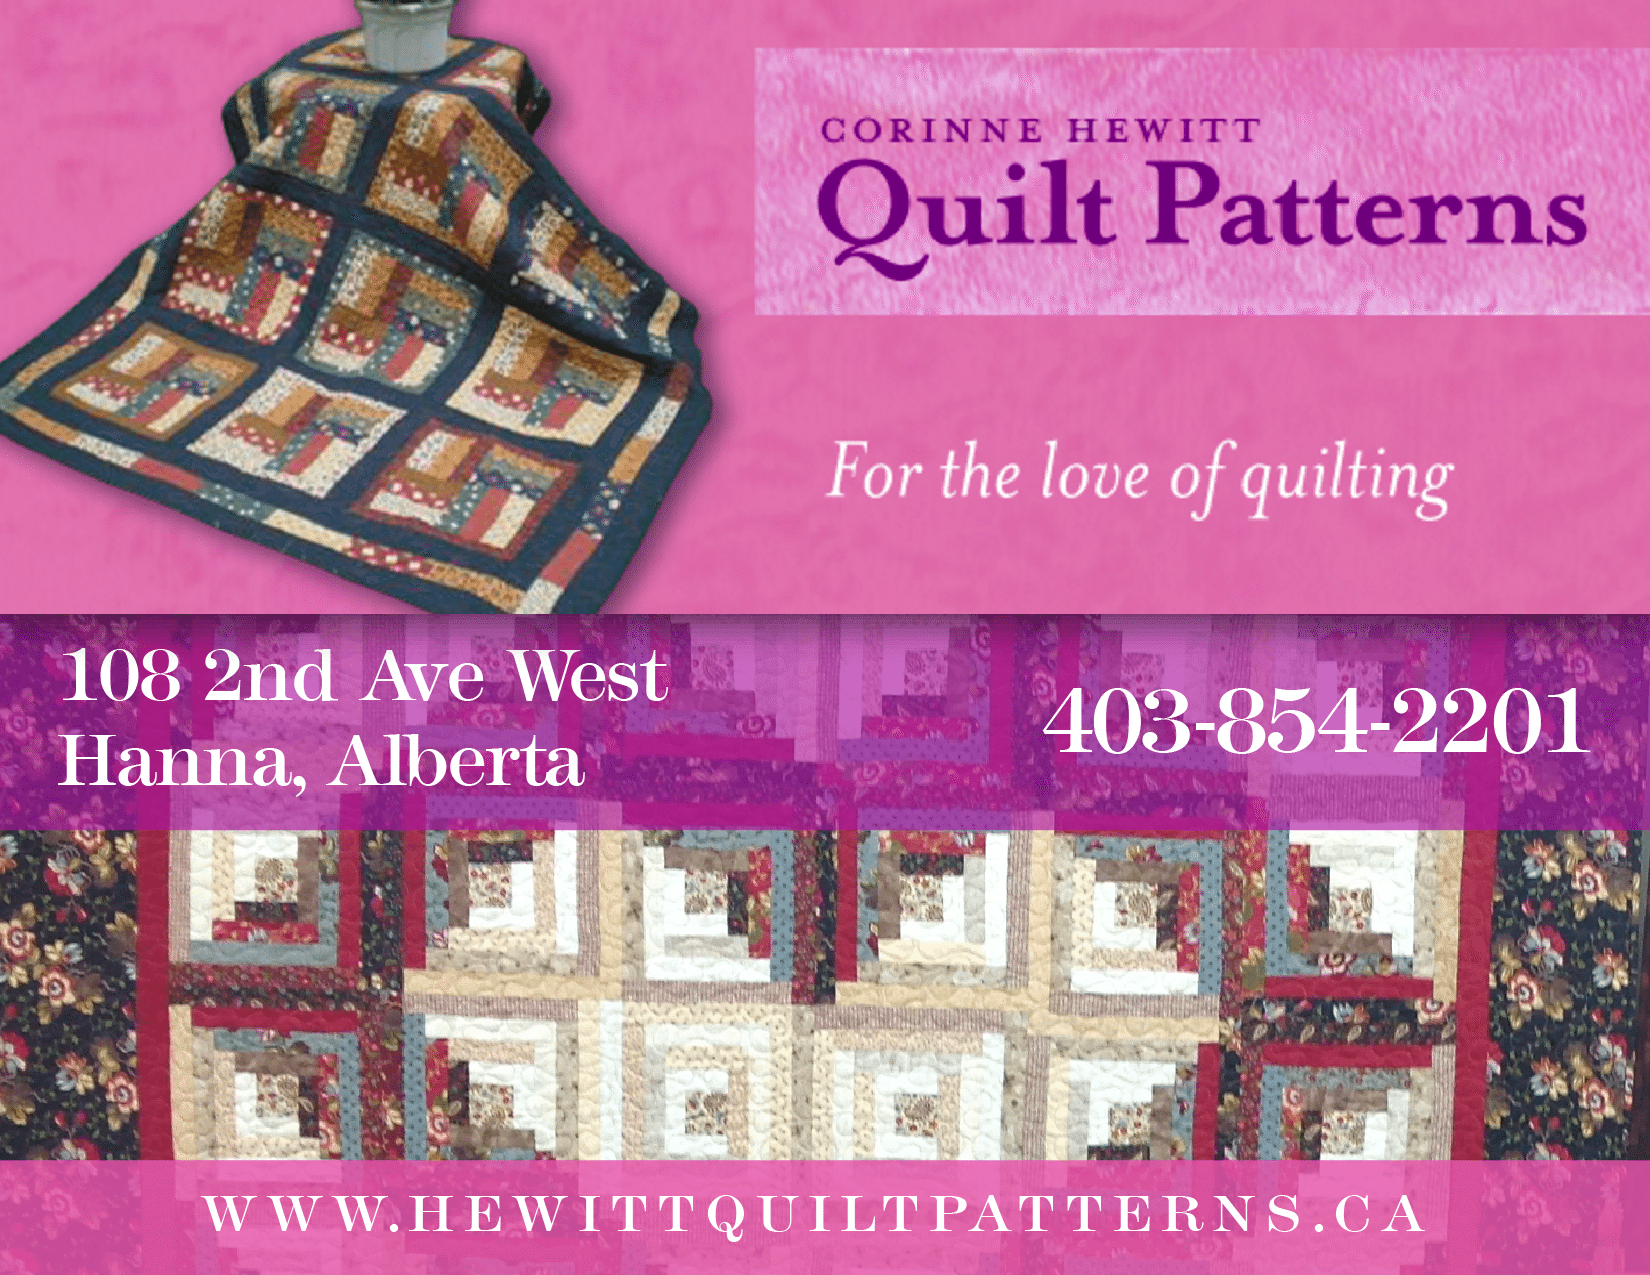 H. Corinne Hewitt Quilt Patterns & Fabrics